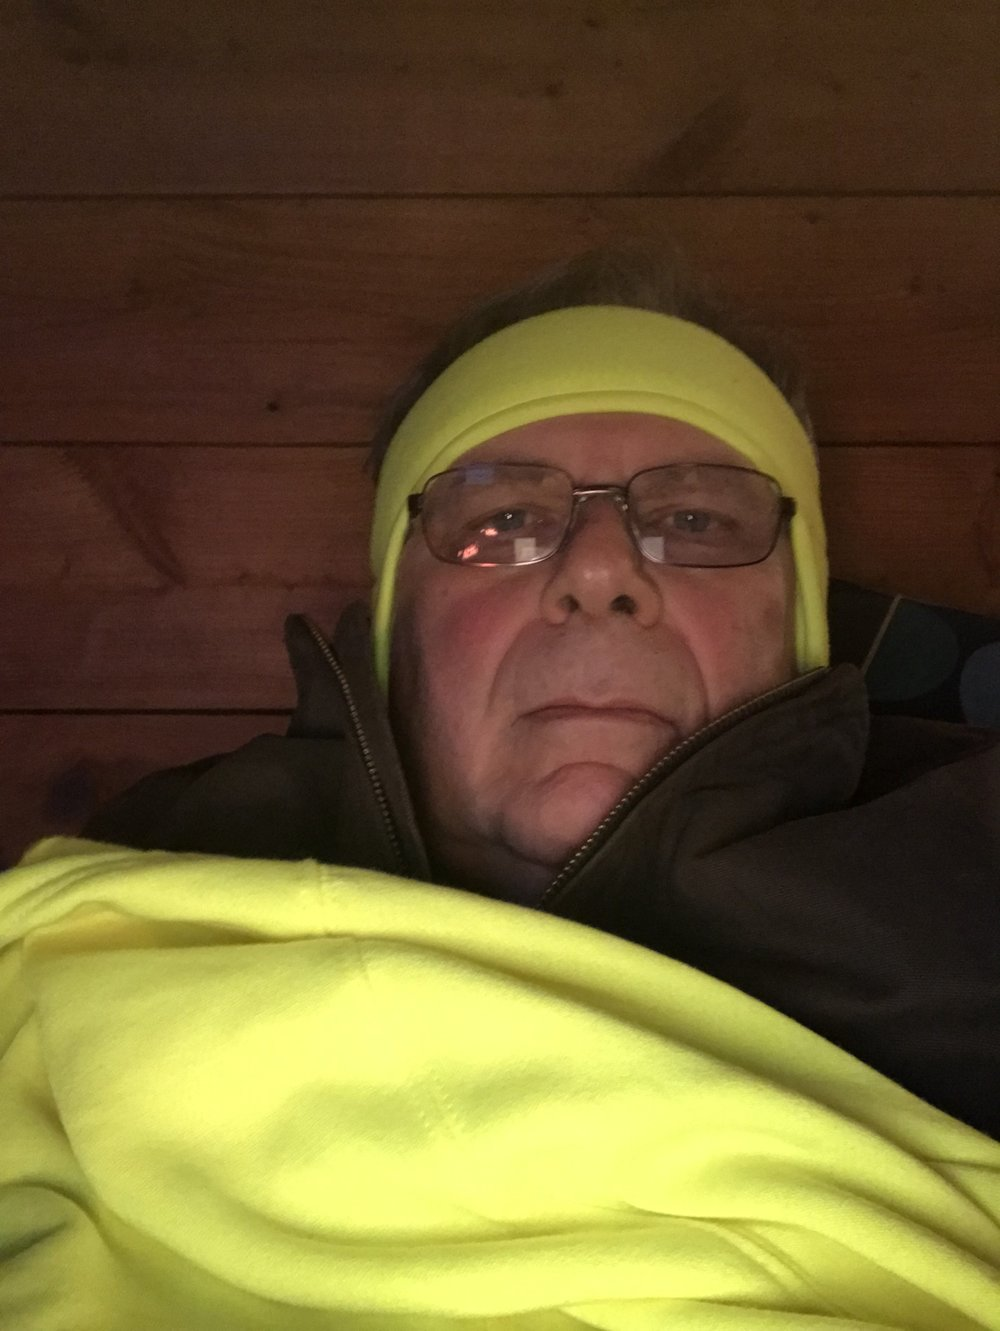 Mike, bundled up and bedding down for the night. Winter in E. Kentucky!